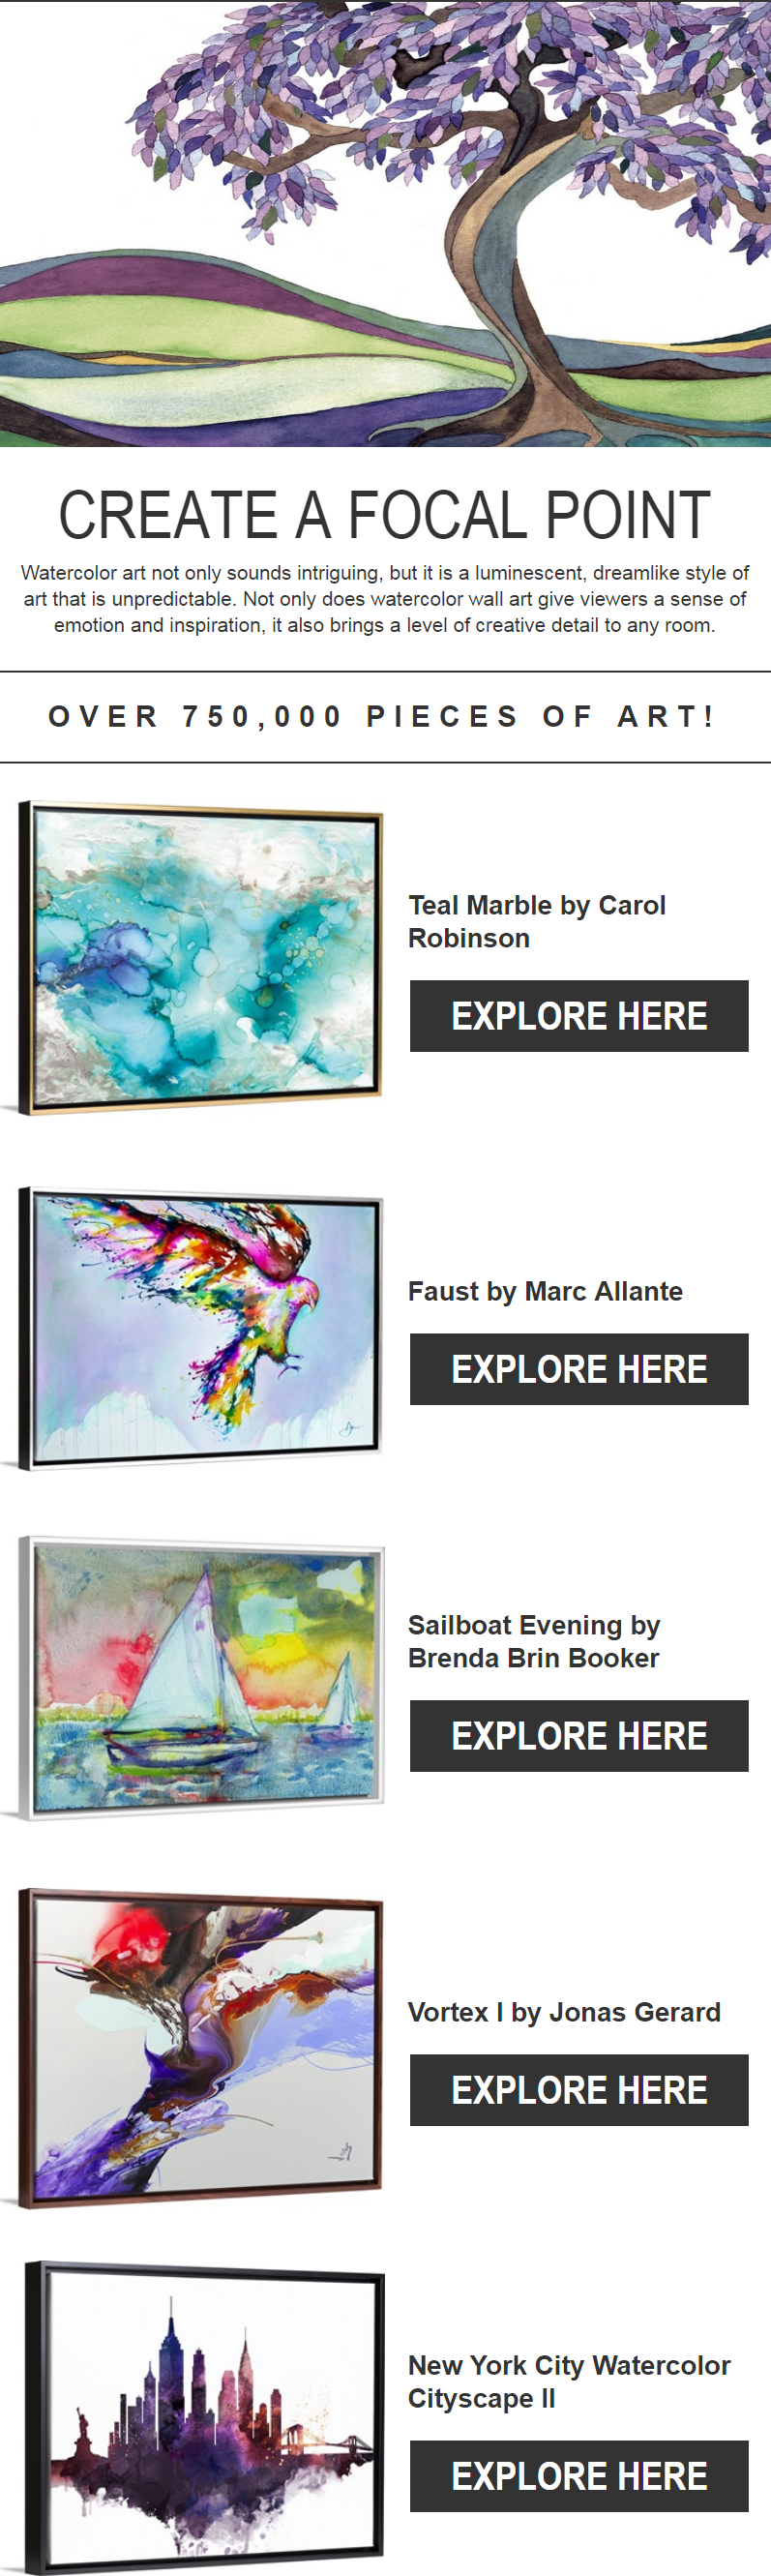 Watercolor art not only sounds intriguing, but it is a luminescent, dreamlike style of art that is u...